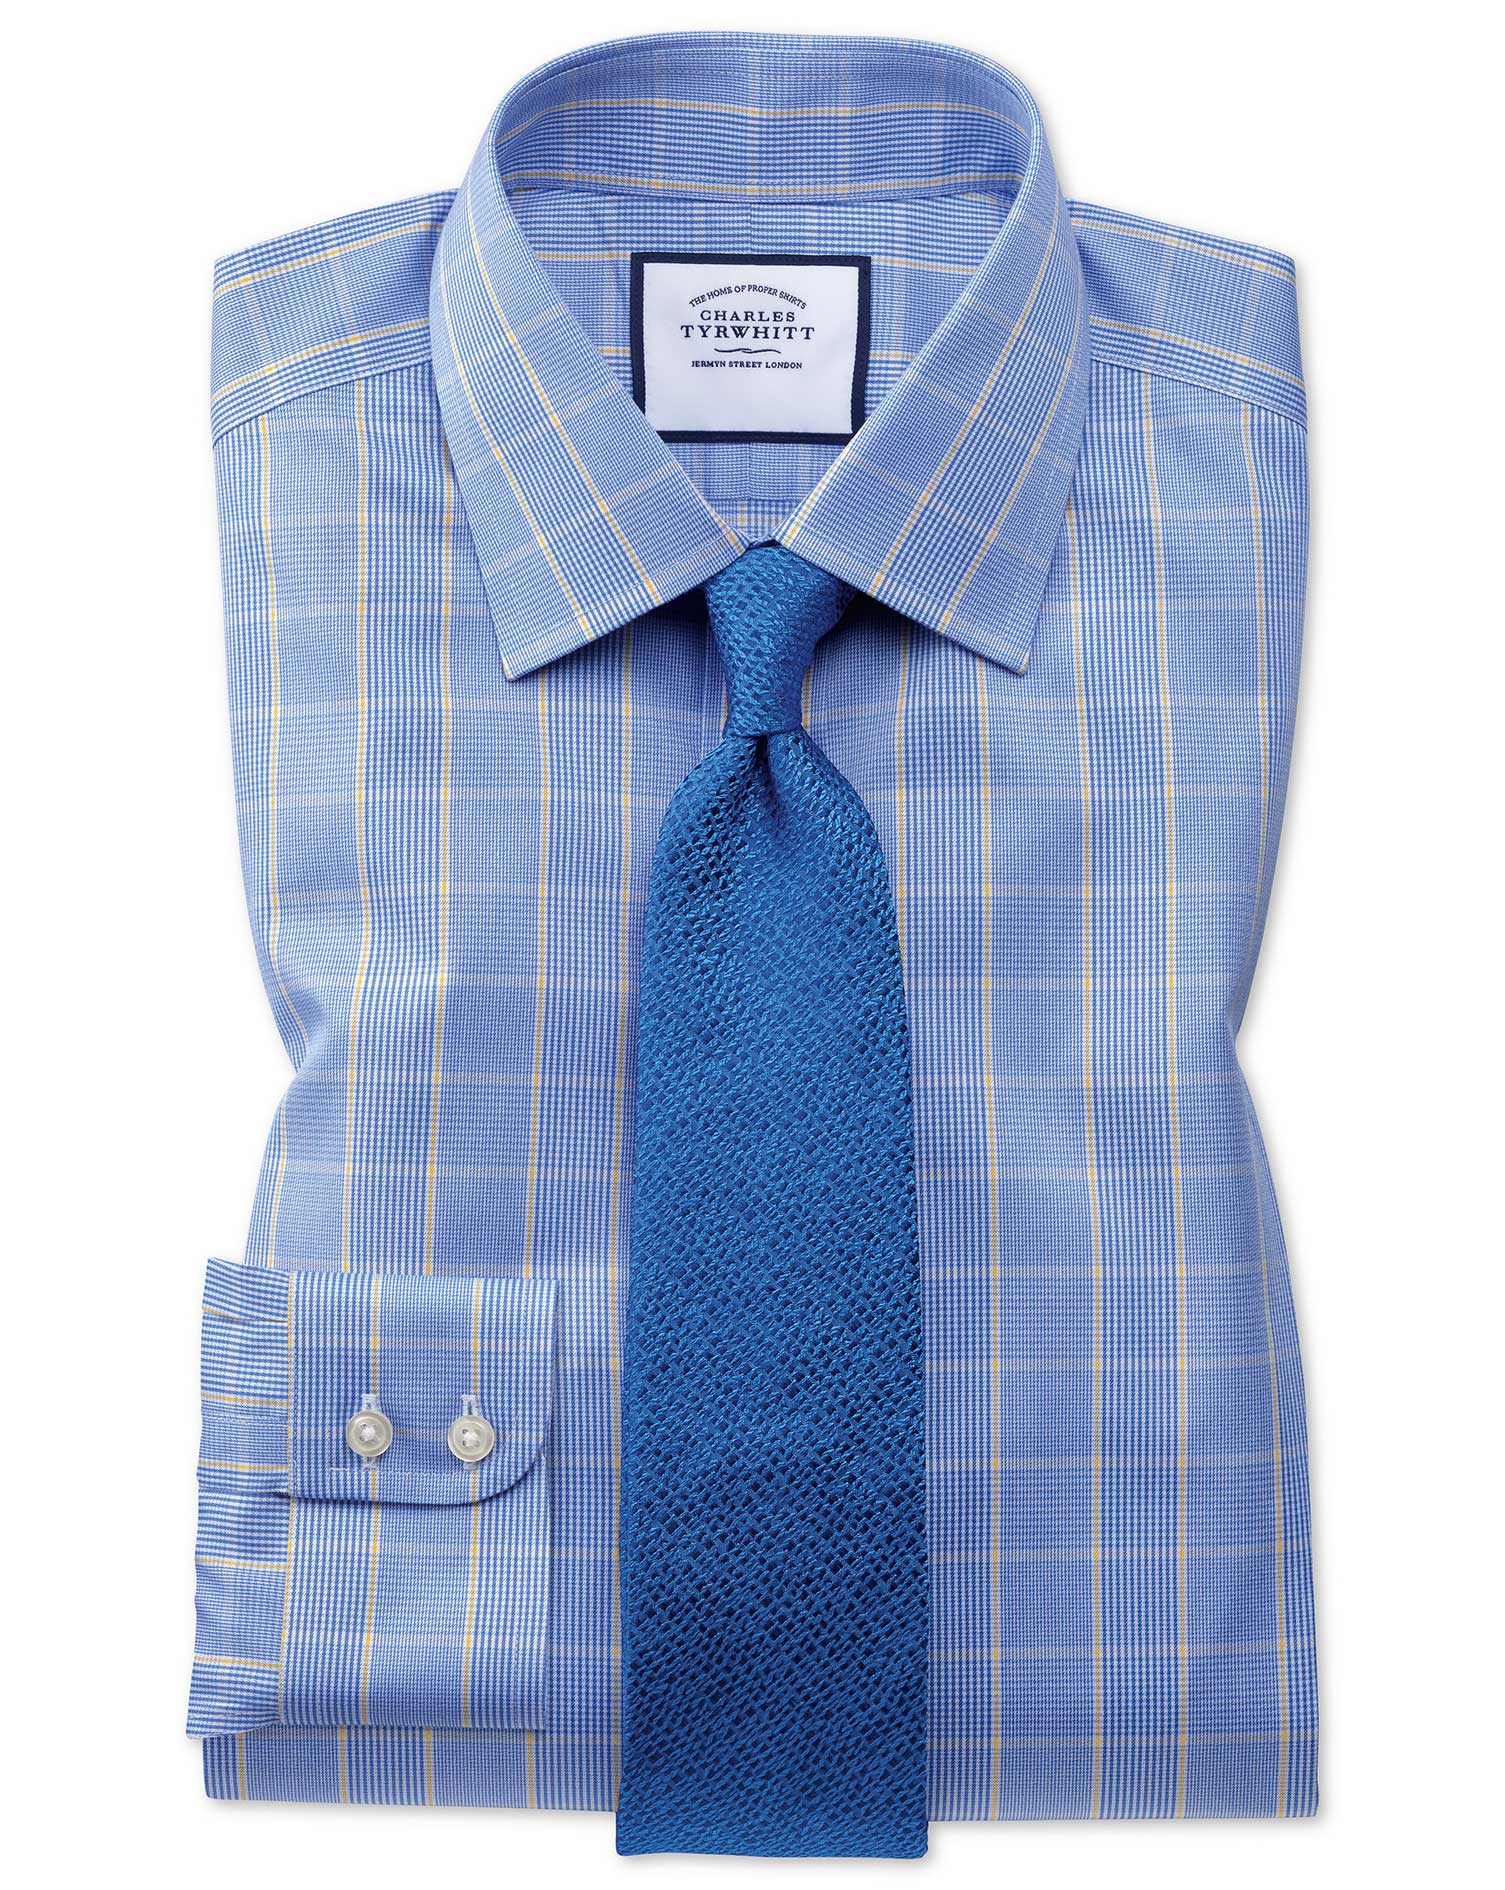 Slim Fit Non-Iron Prince Of Wales Blue and Gold Cotton Formal Shirt Single Cuff Size 16/34 by Charle